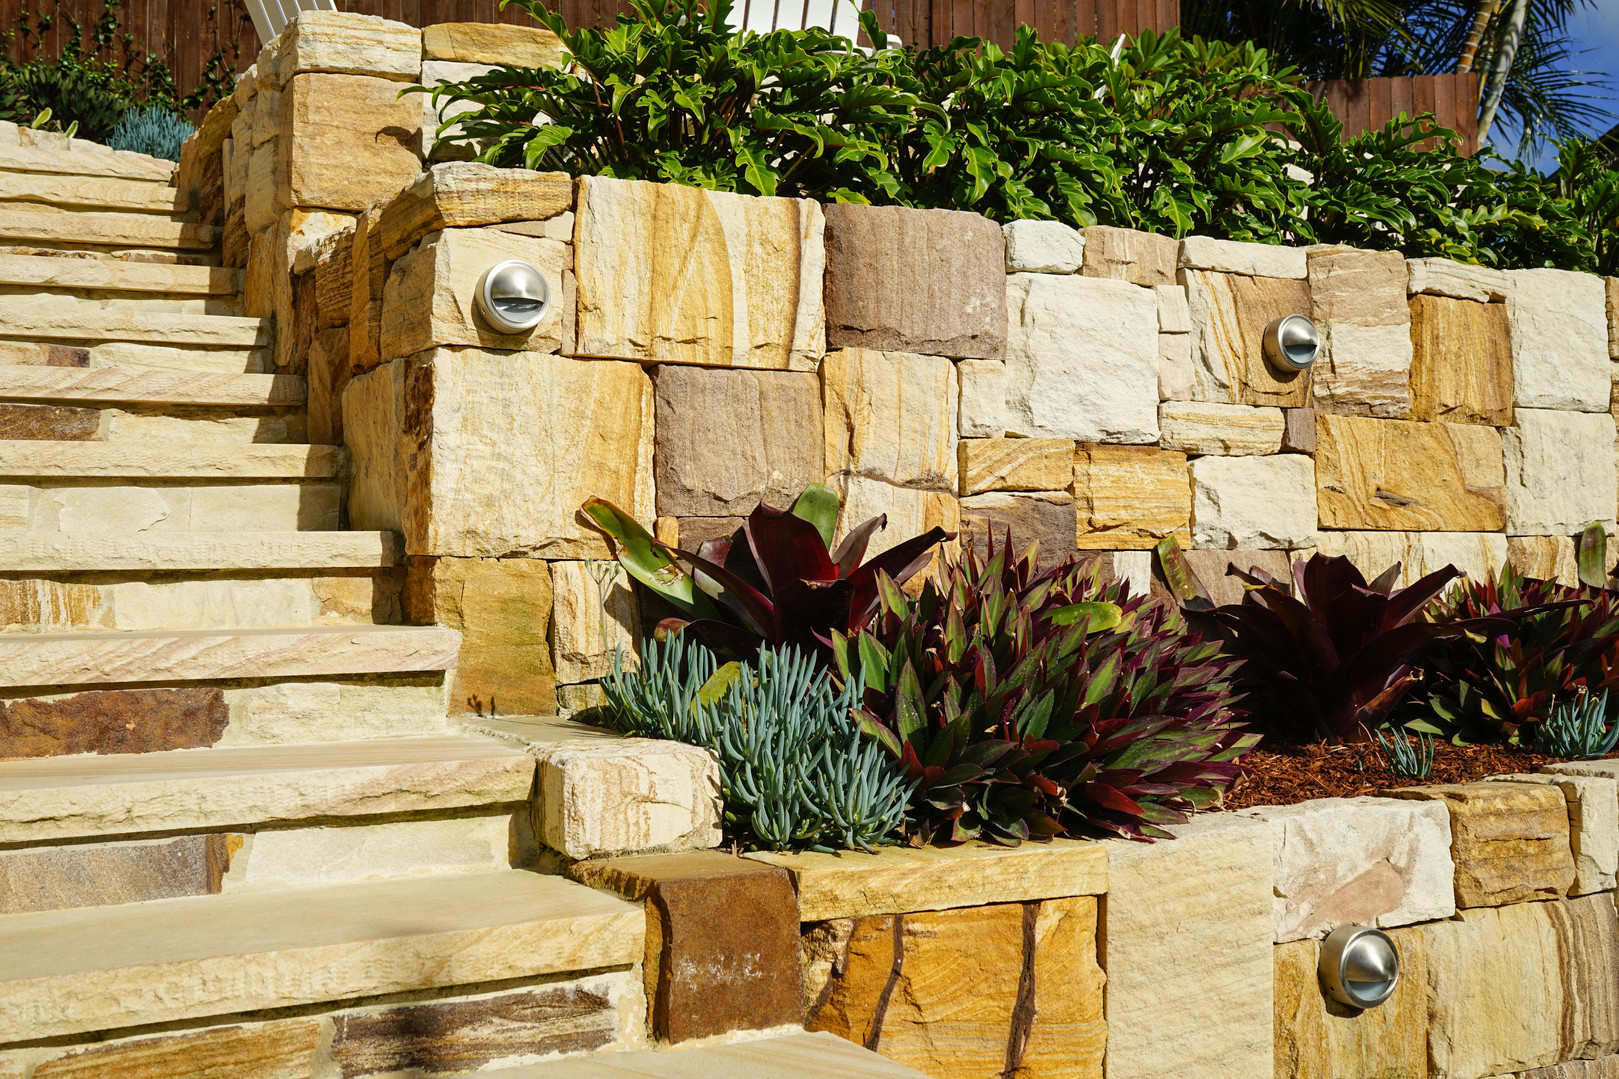 Sandstone retaining wall and stairs